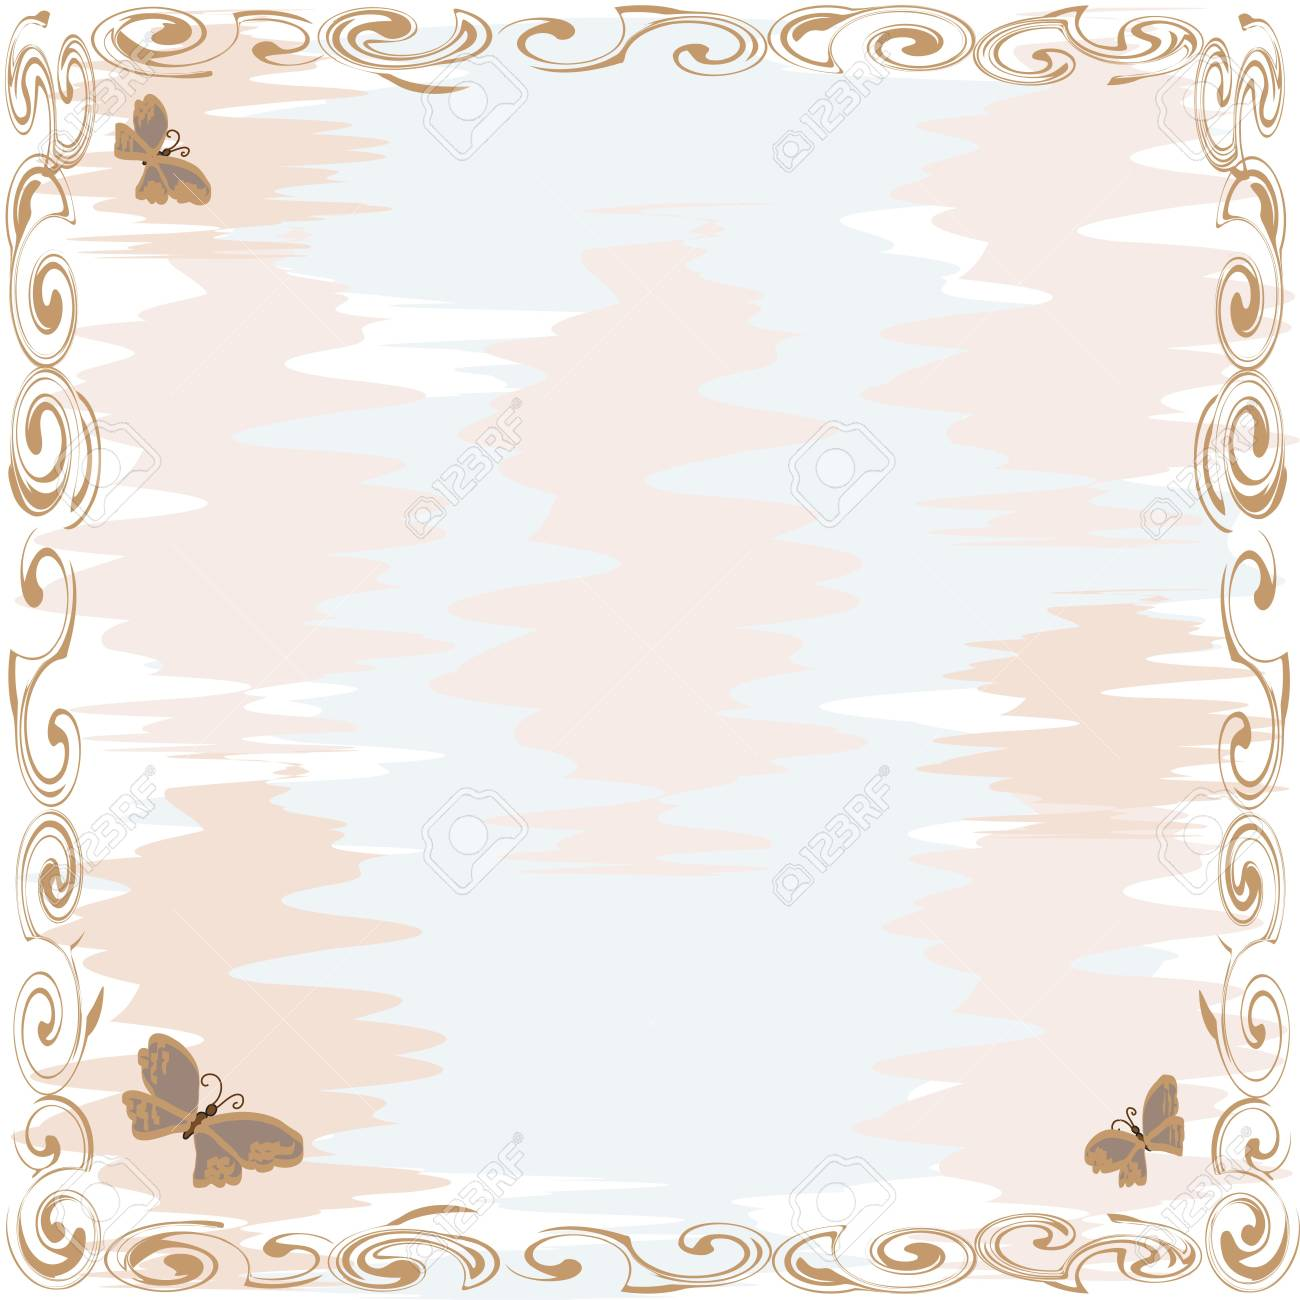 Abstract background with ornamental border and butterfly Stock Vector - 9496352